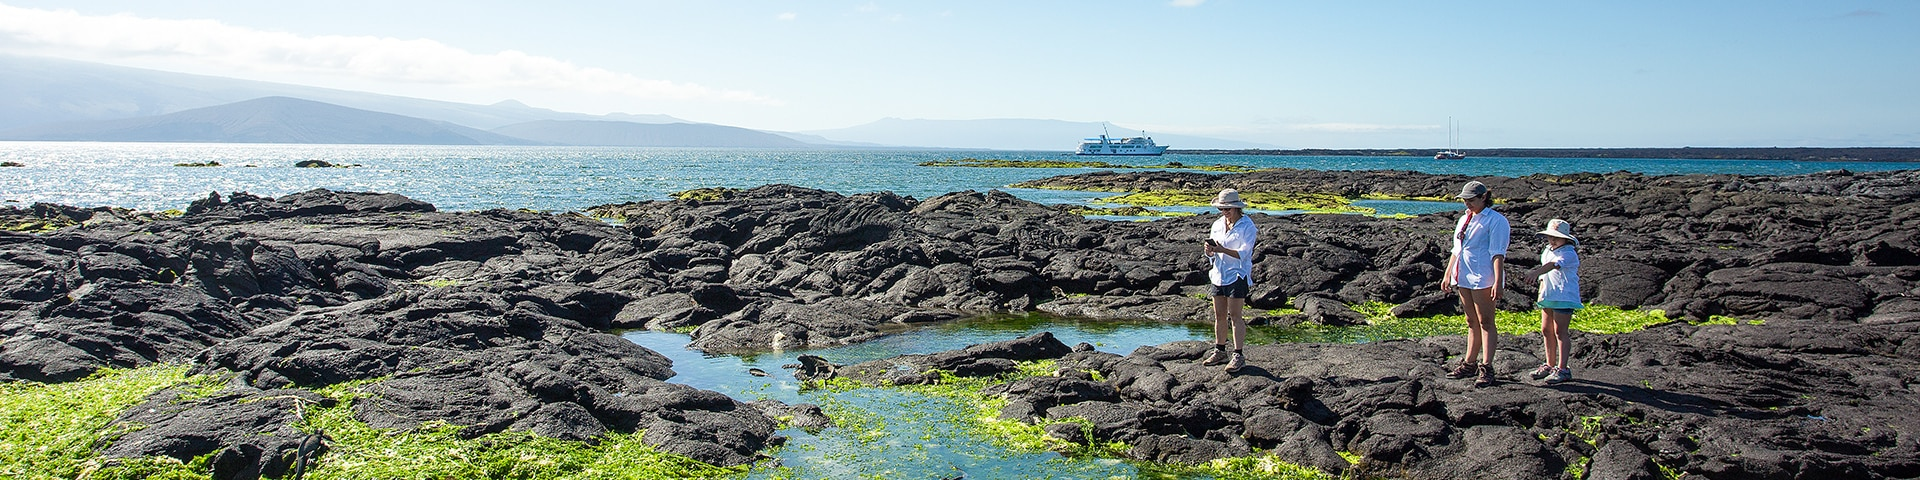 Galapagos - Lava - Hiking